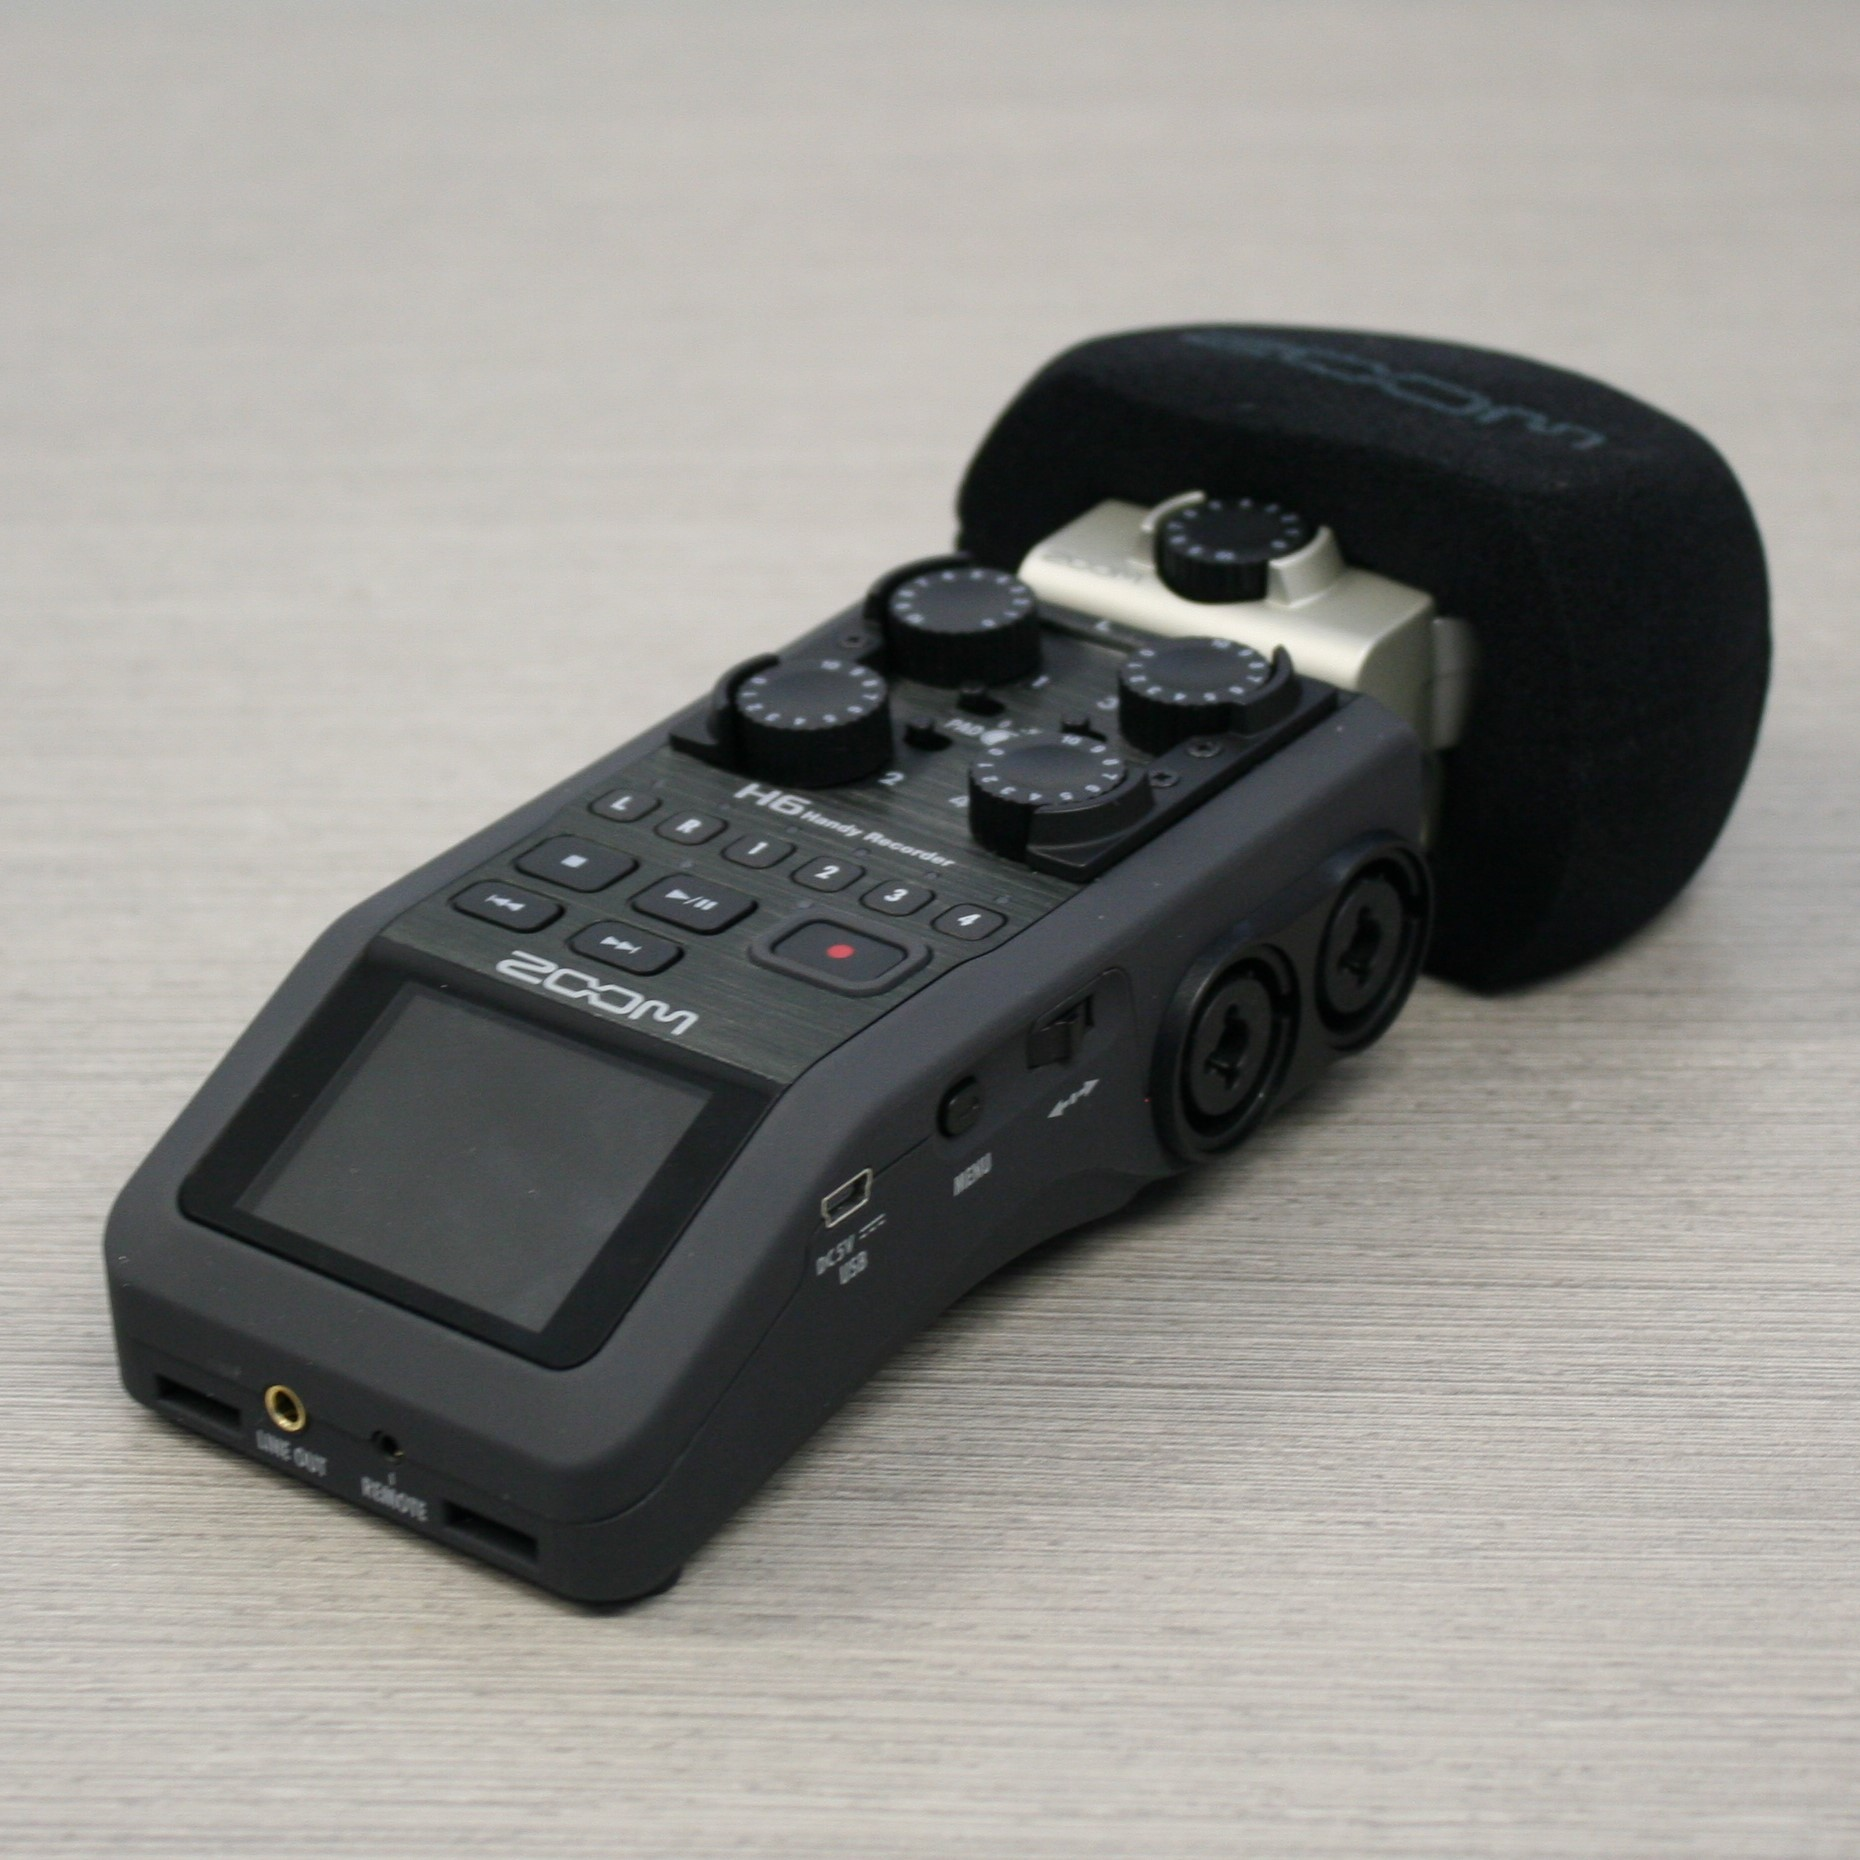 H6 Handy Recorder